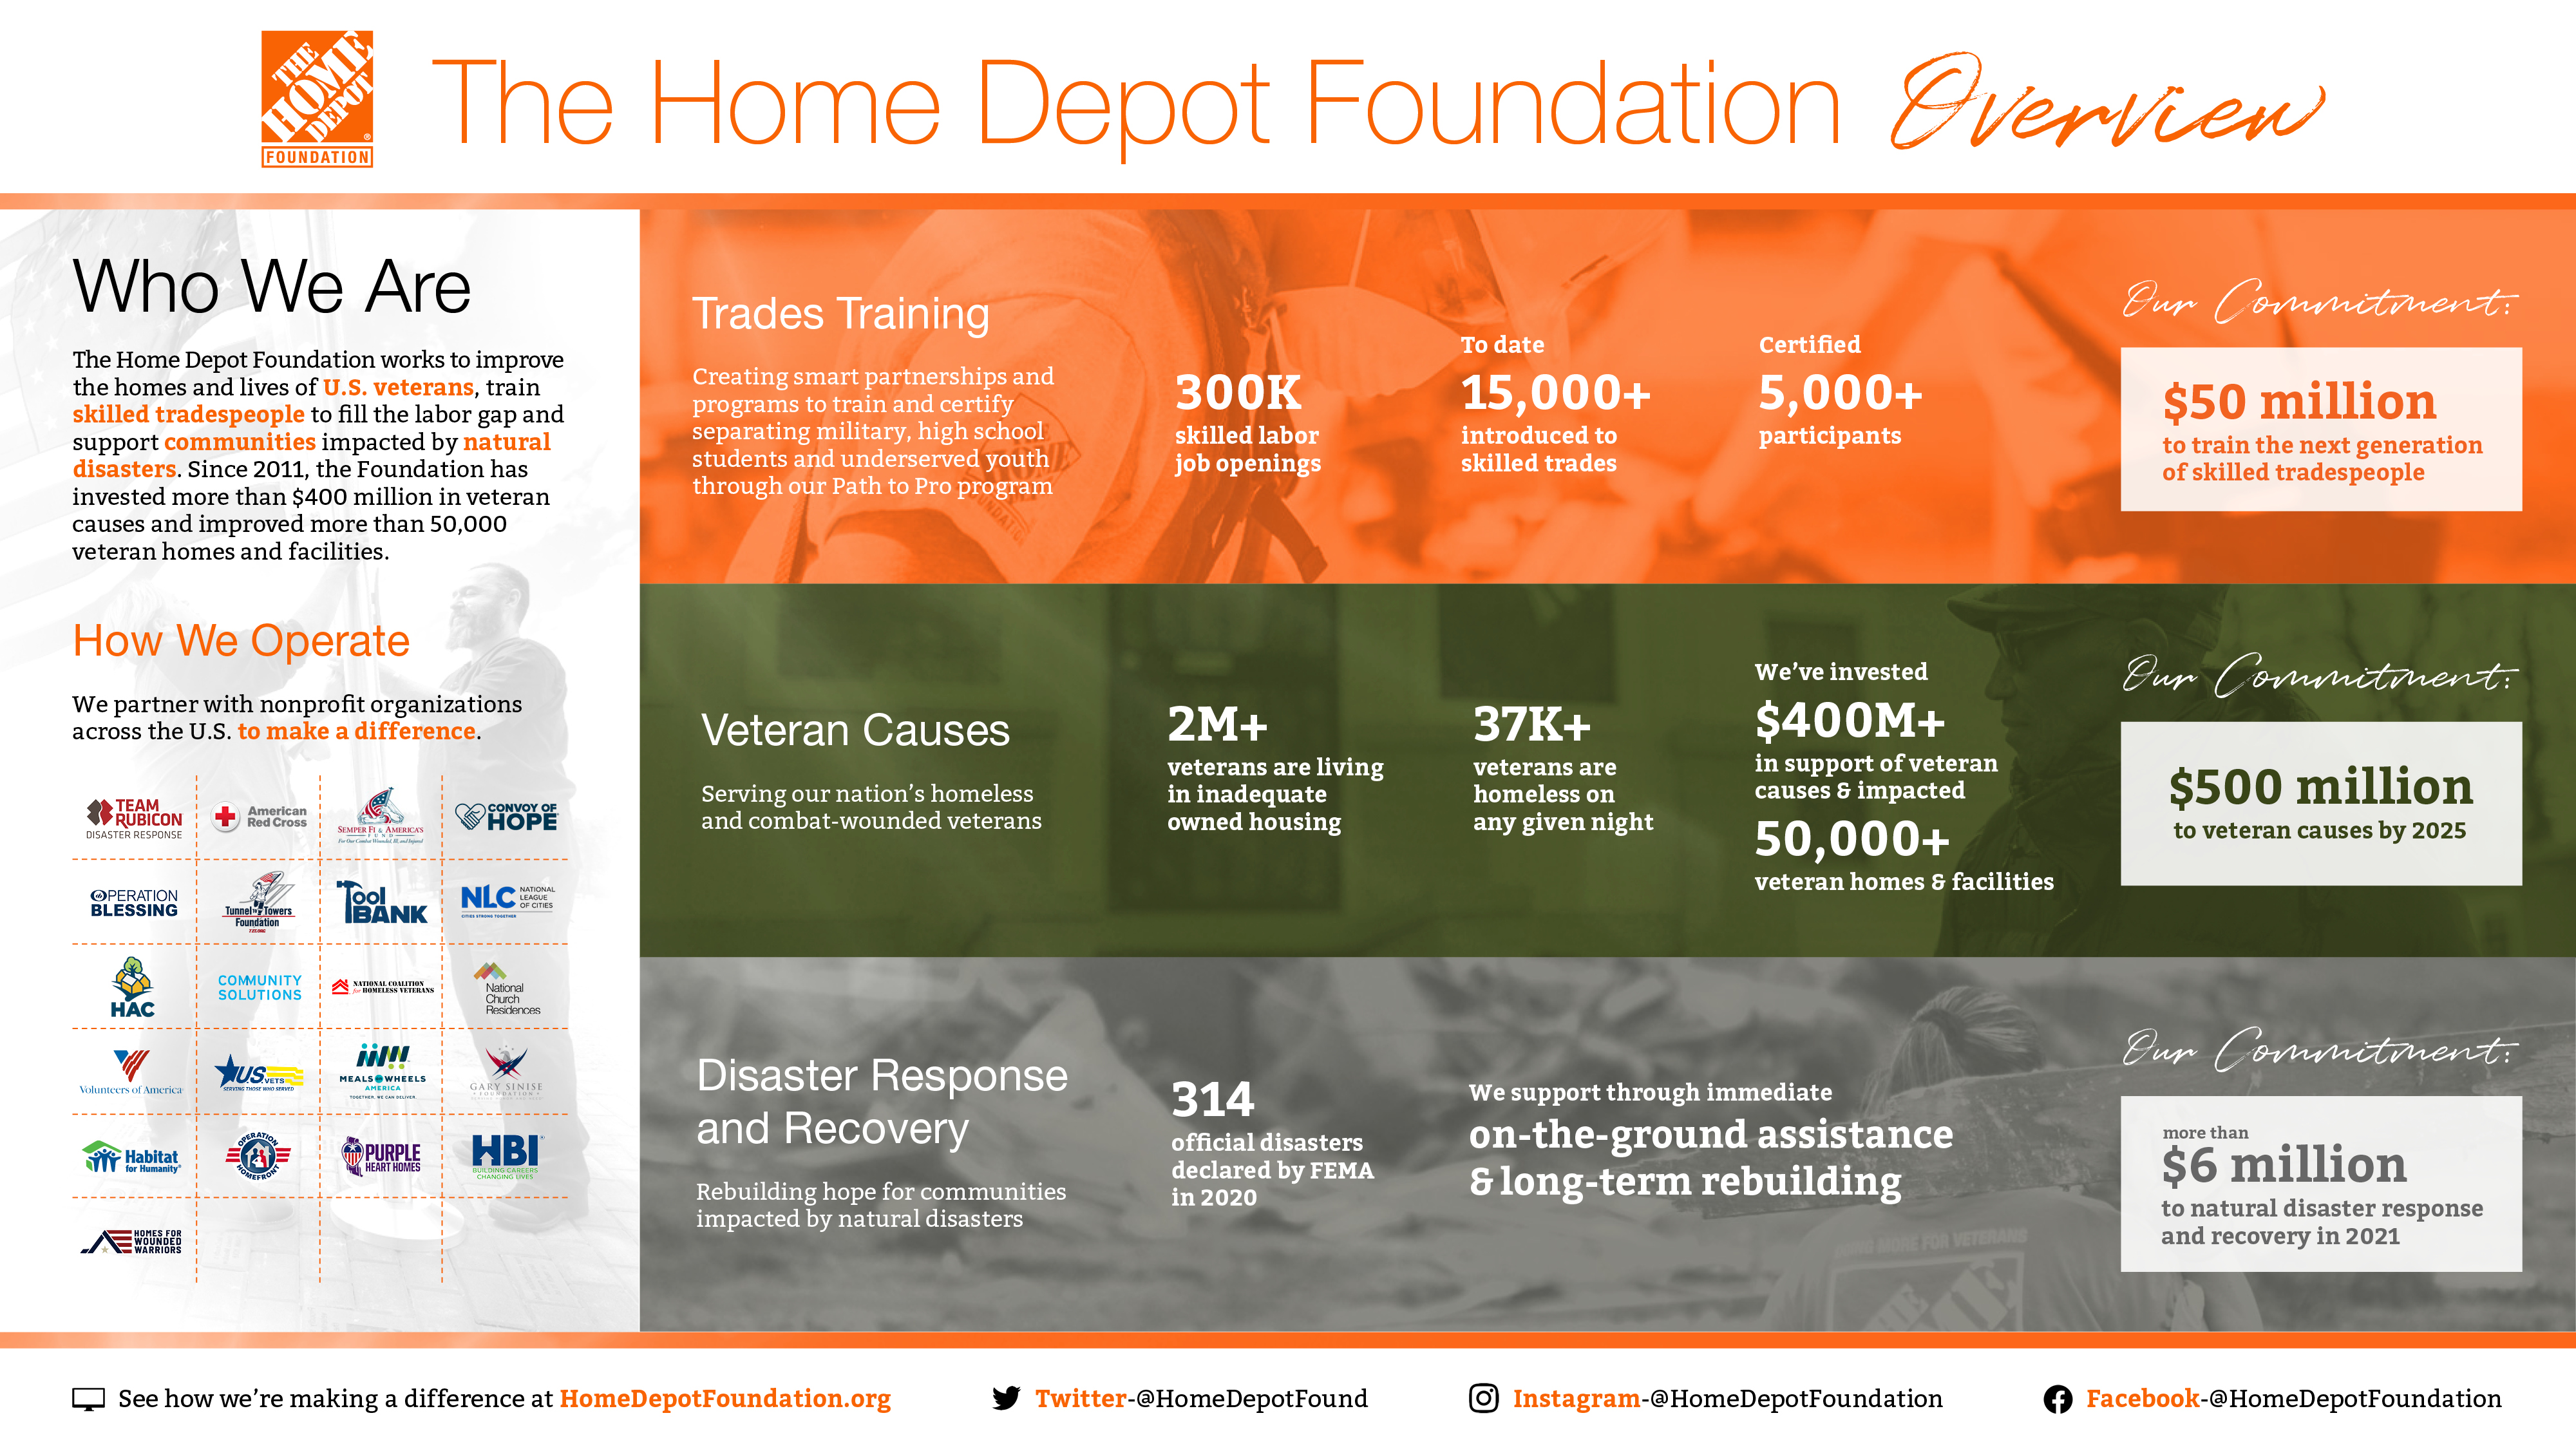 The Home Depot Foundation Giving OvervieW